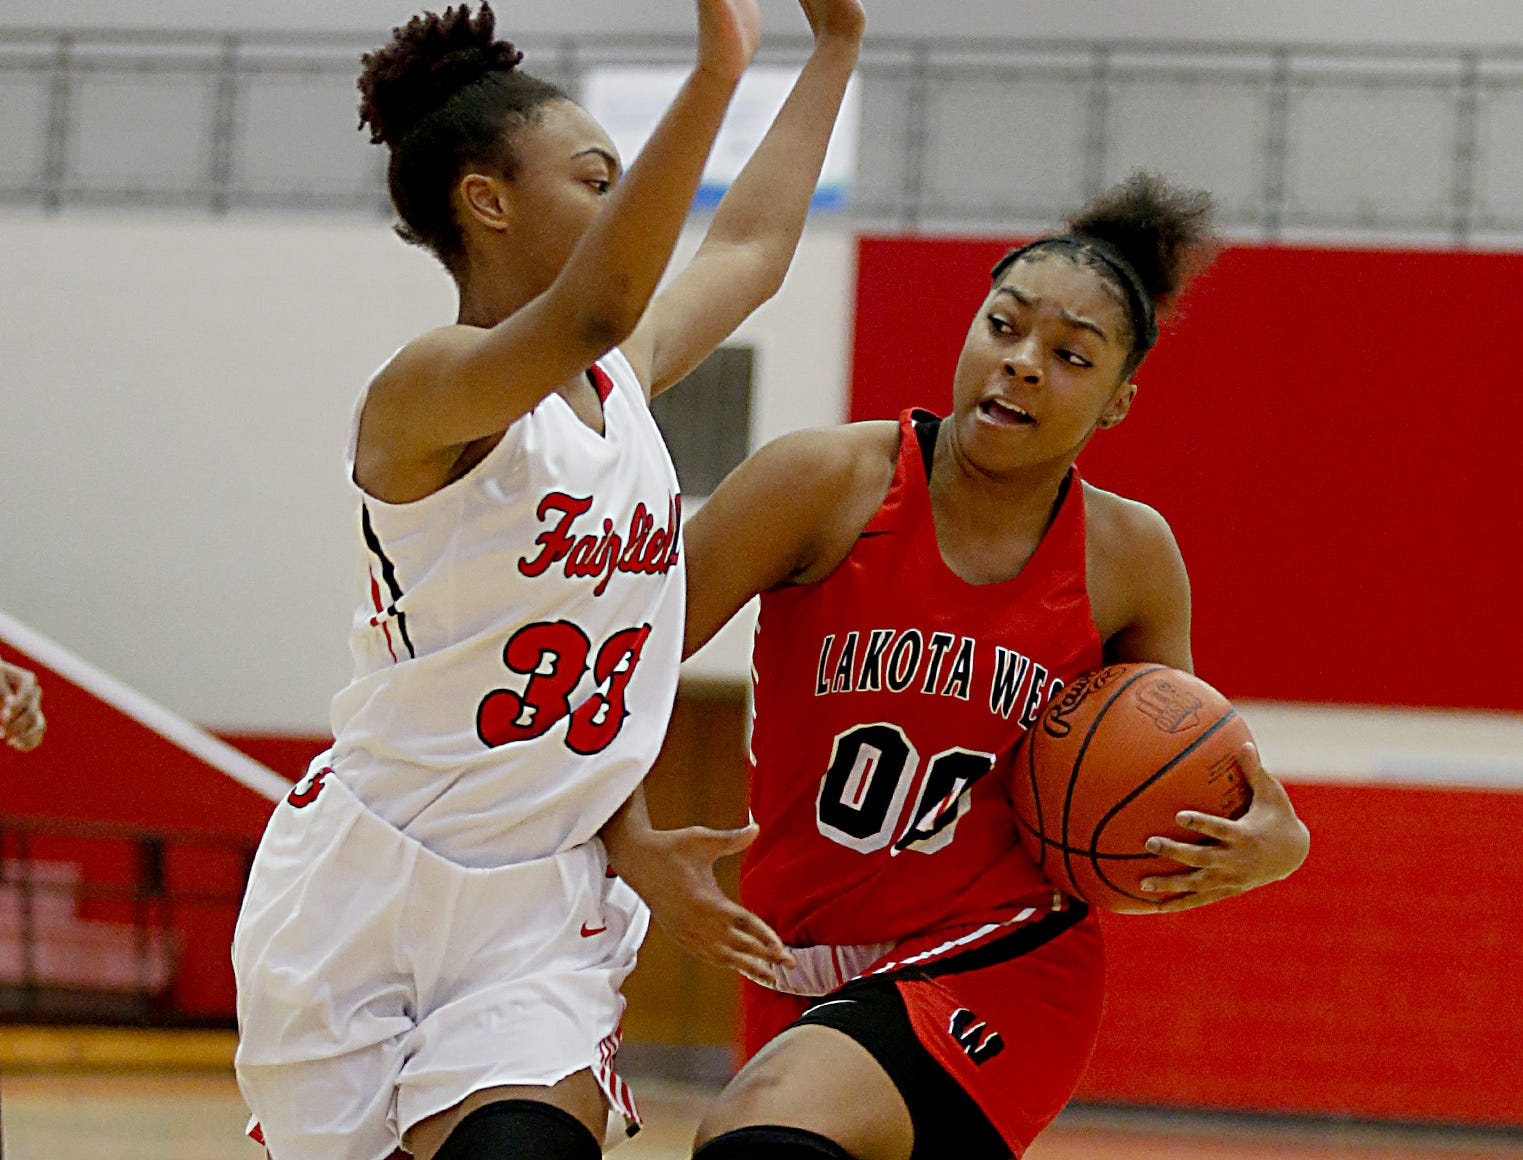 Lakota West guard Jaydis Gales breaks away from Fairfield guard Kelis Jones to score two during their game at Fairfield Saturday, Dec. 1, 2018.